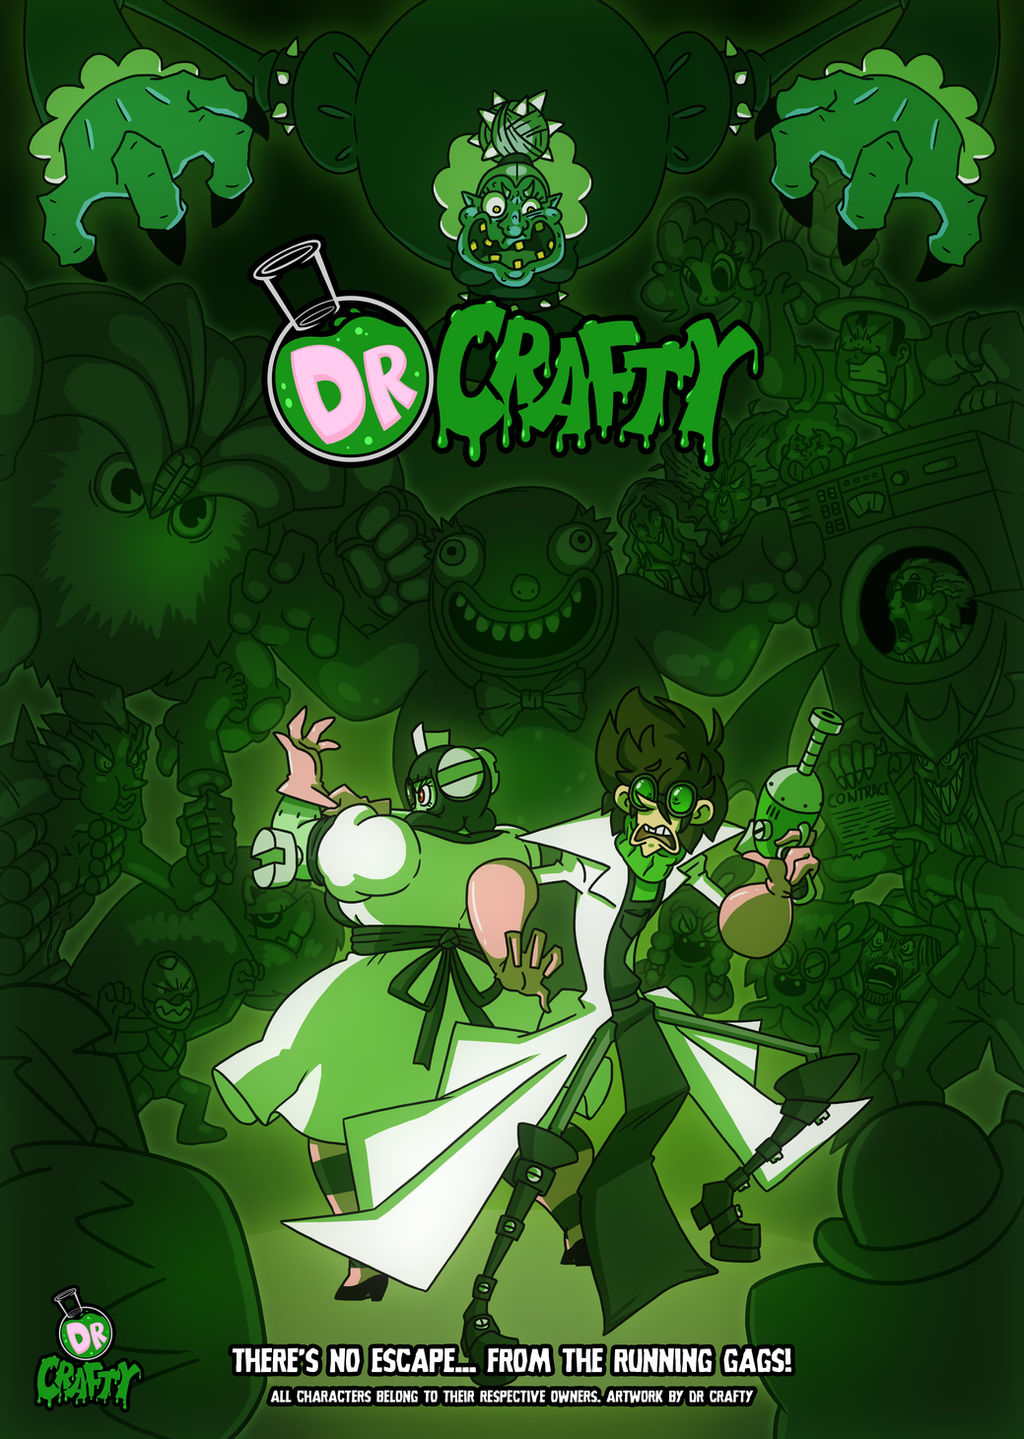 Crafty Concoction: Dr Crafty Poster by DrCrafty